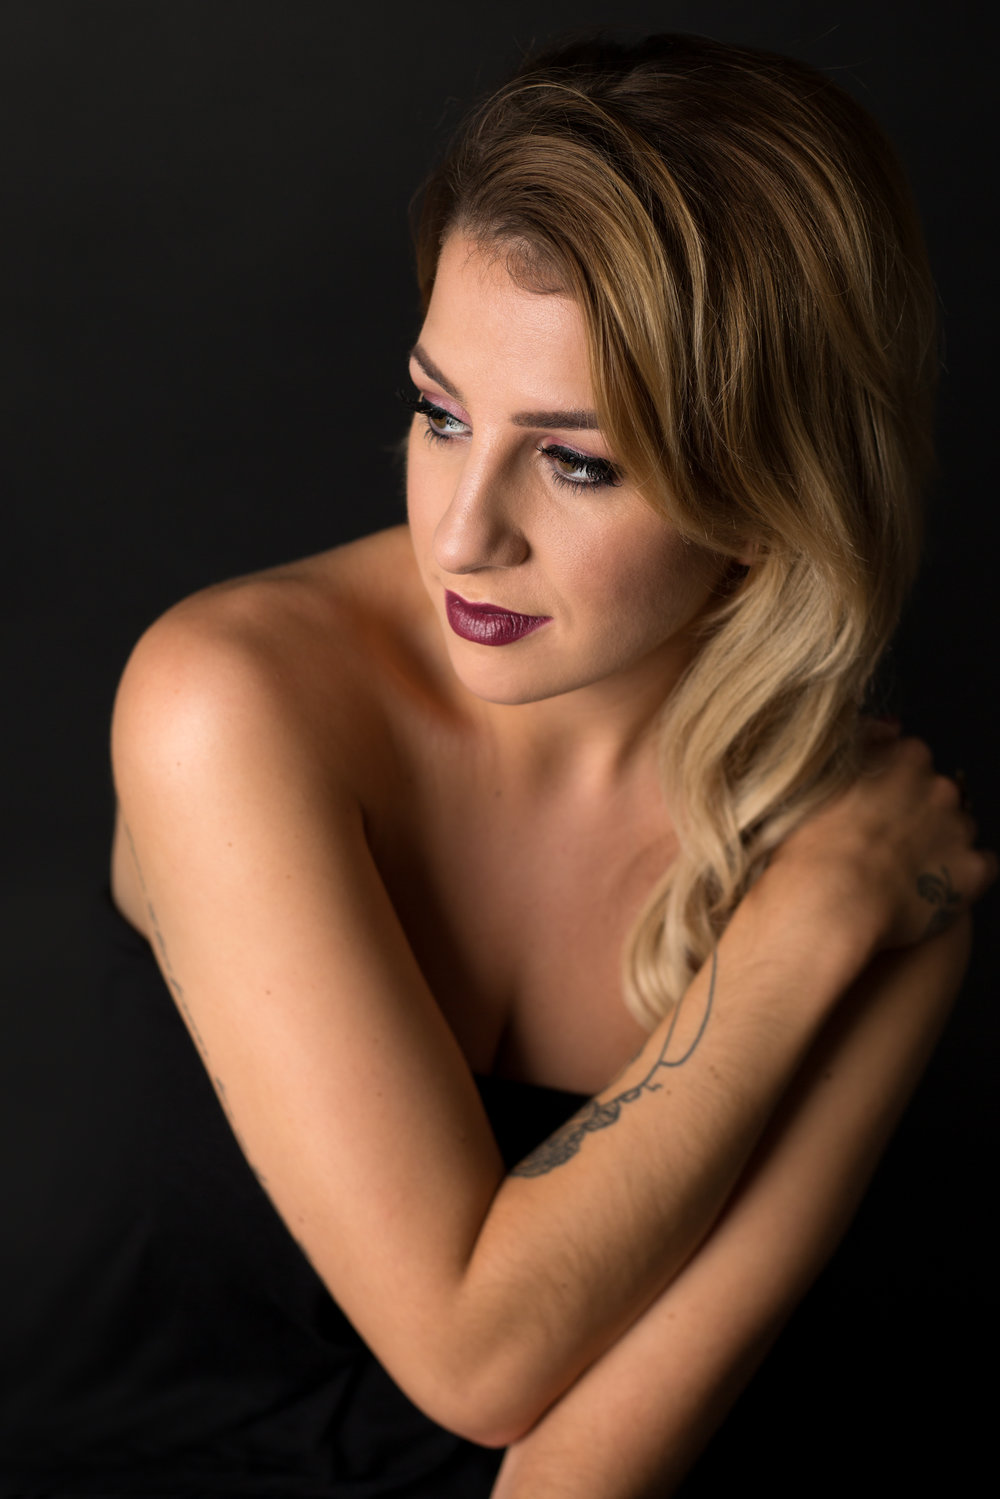 LEA-COOPER-PHOTOGRAPHY-WILLENHALL-WEST-MIDLANDS-WOLVERHAMPTON-PORTRAIT-MEGAN-REECE-STUDIO-GORGEOUS.jpg